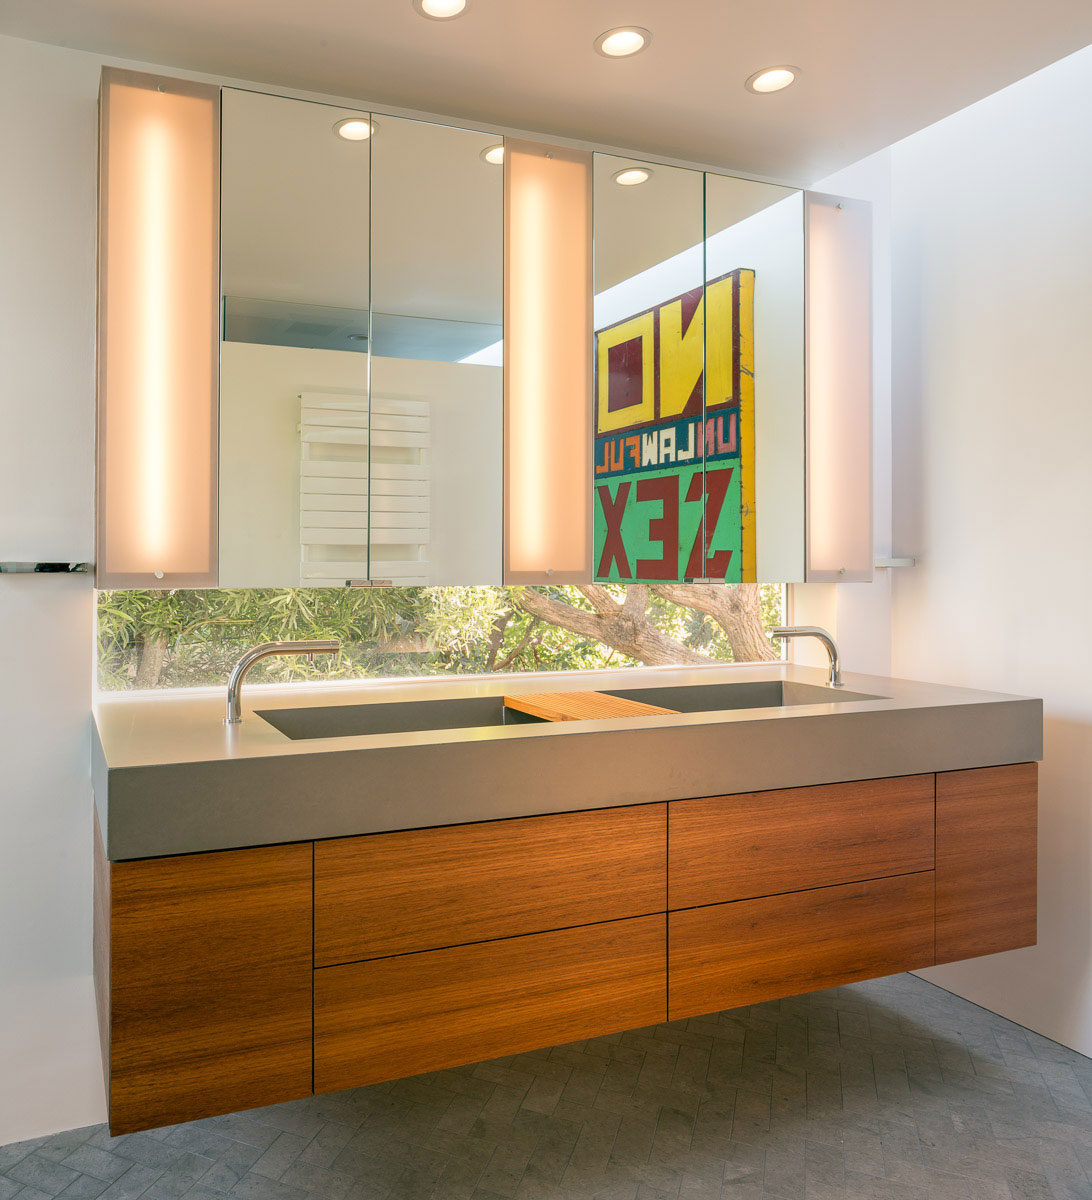 Bathroom Remodel In San Francisco Jeff King Company Joins Building Lab For San Francisco